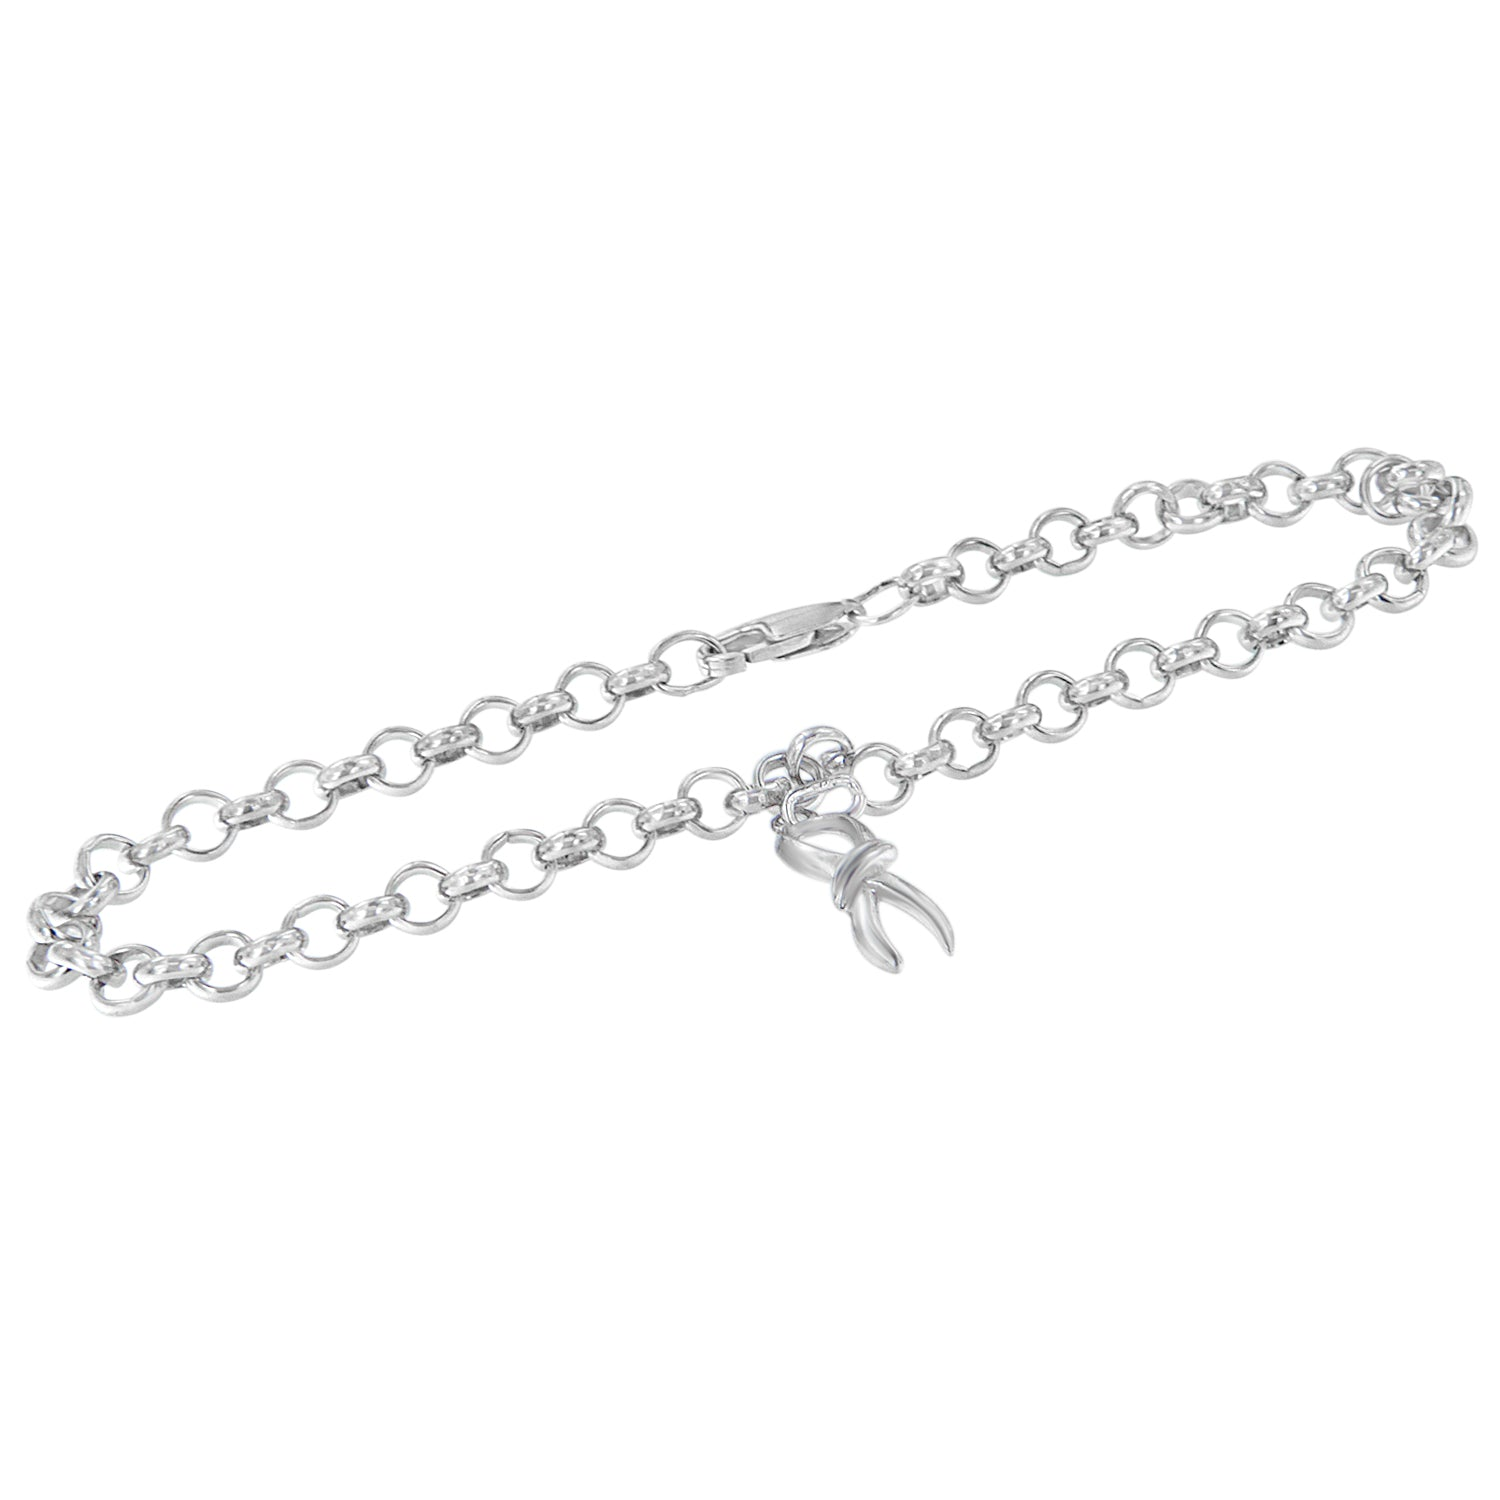 Sterling Silver Charm Bracelet with Infinity Charm